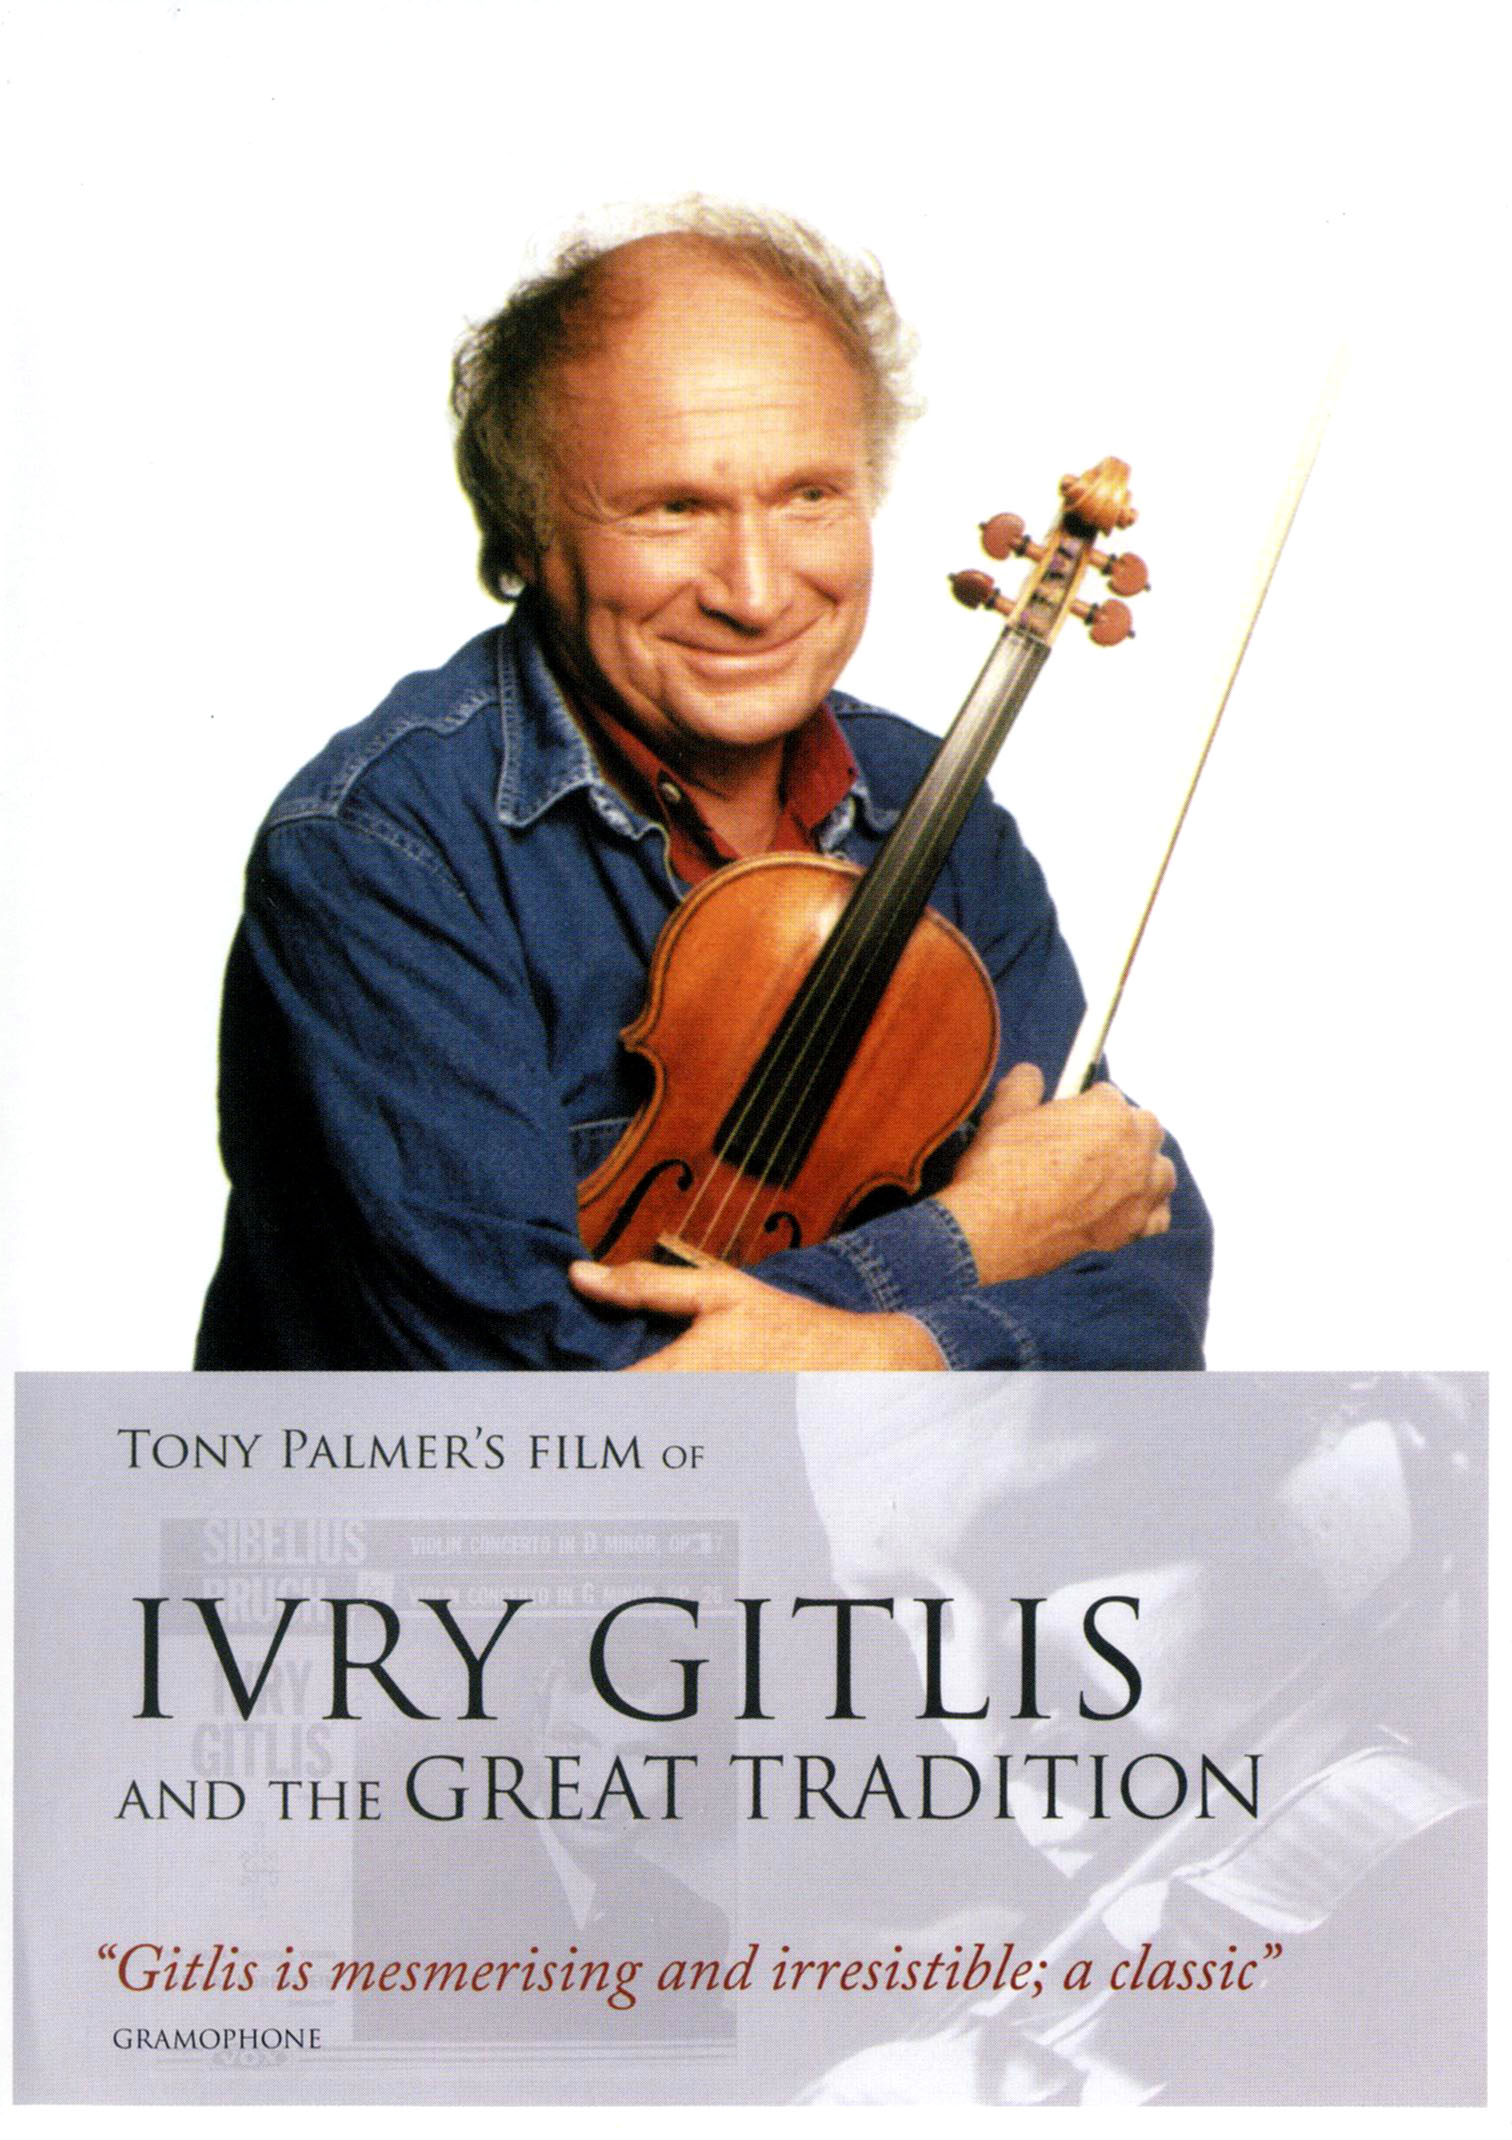 Ivry Gitlis and the Great Tradition